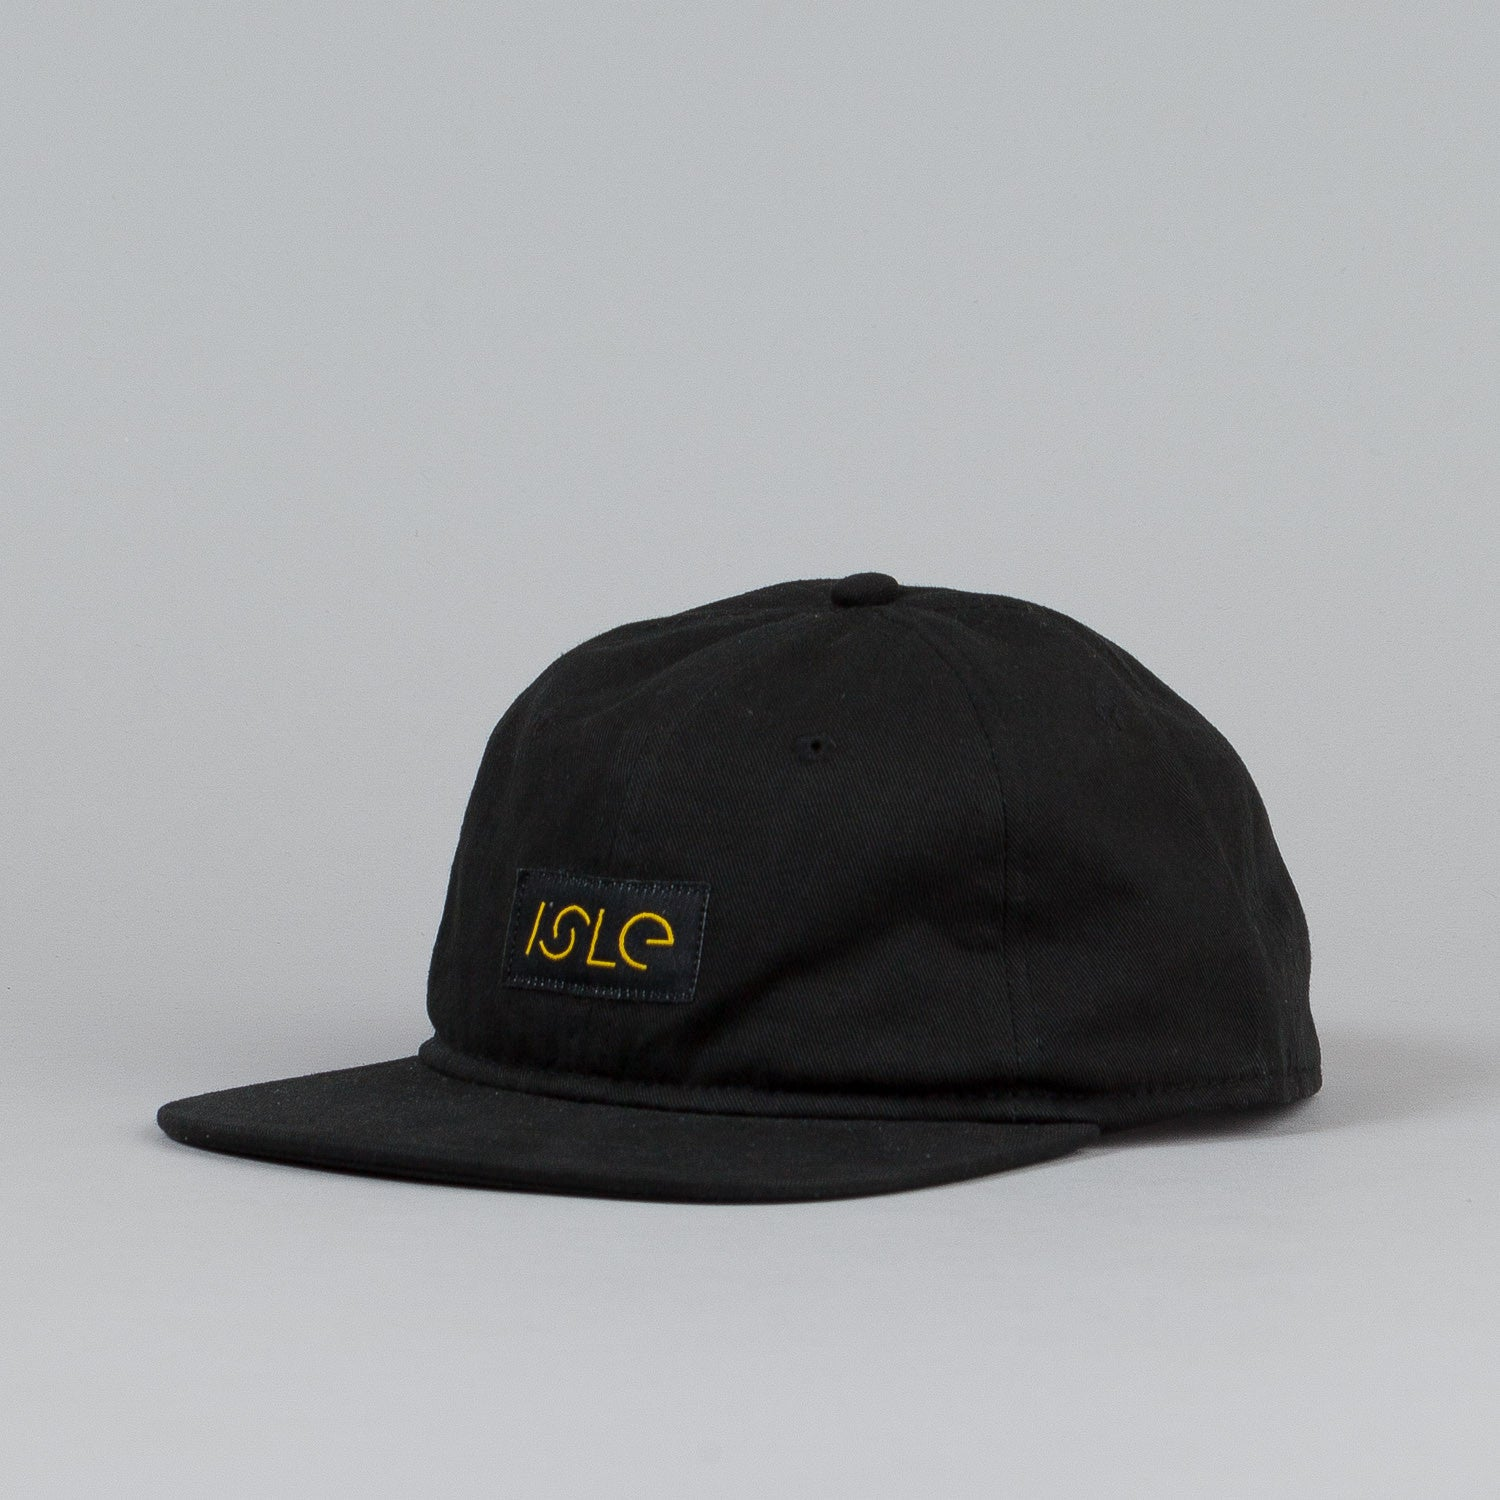 Isle Cap Black/Yellow